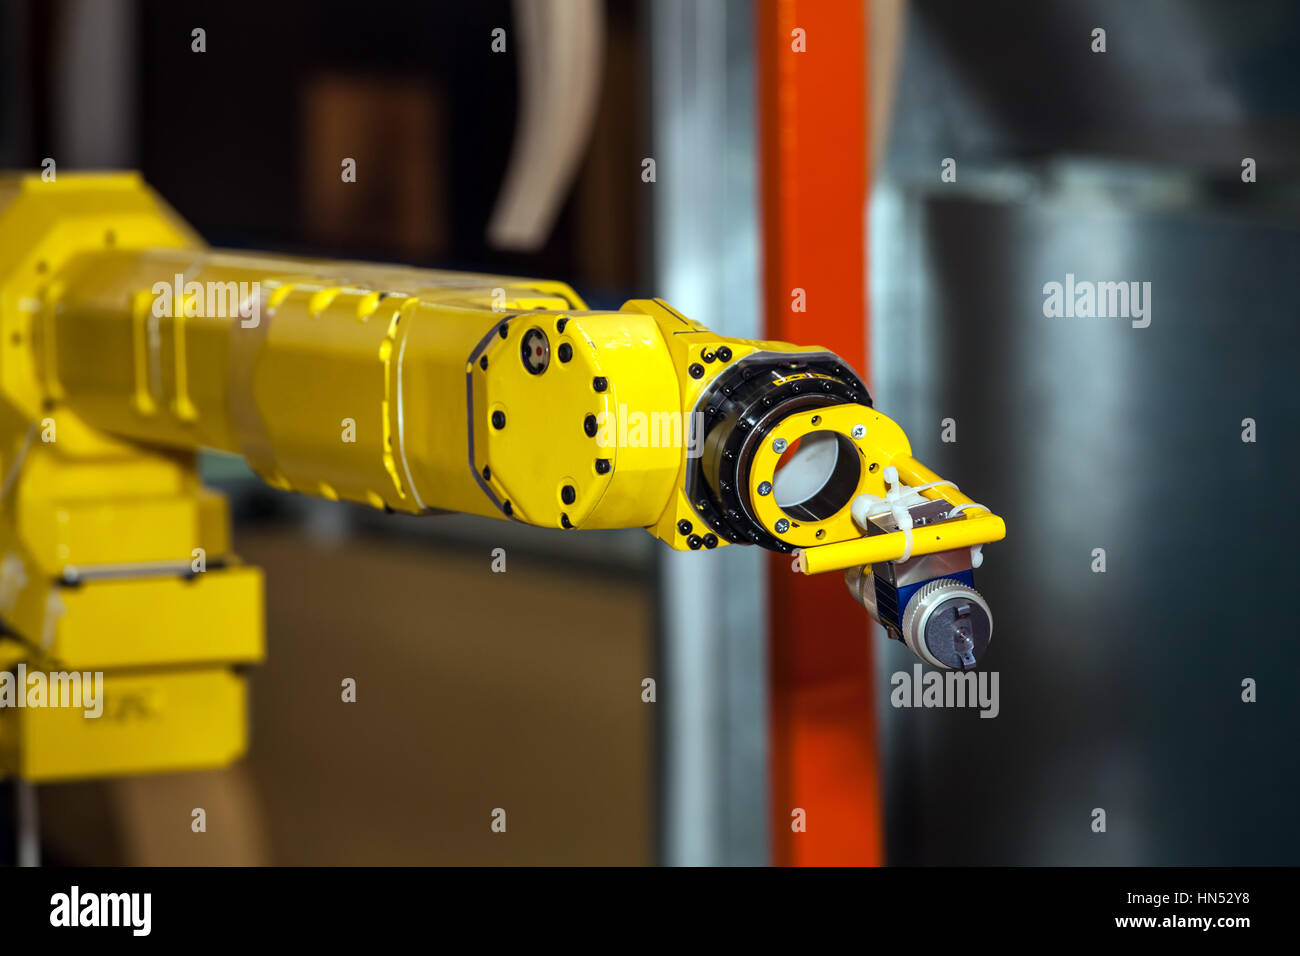 Industrial robot - Stock Image